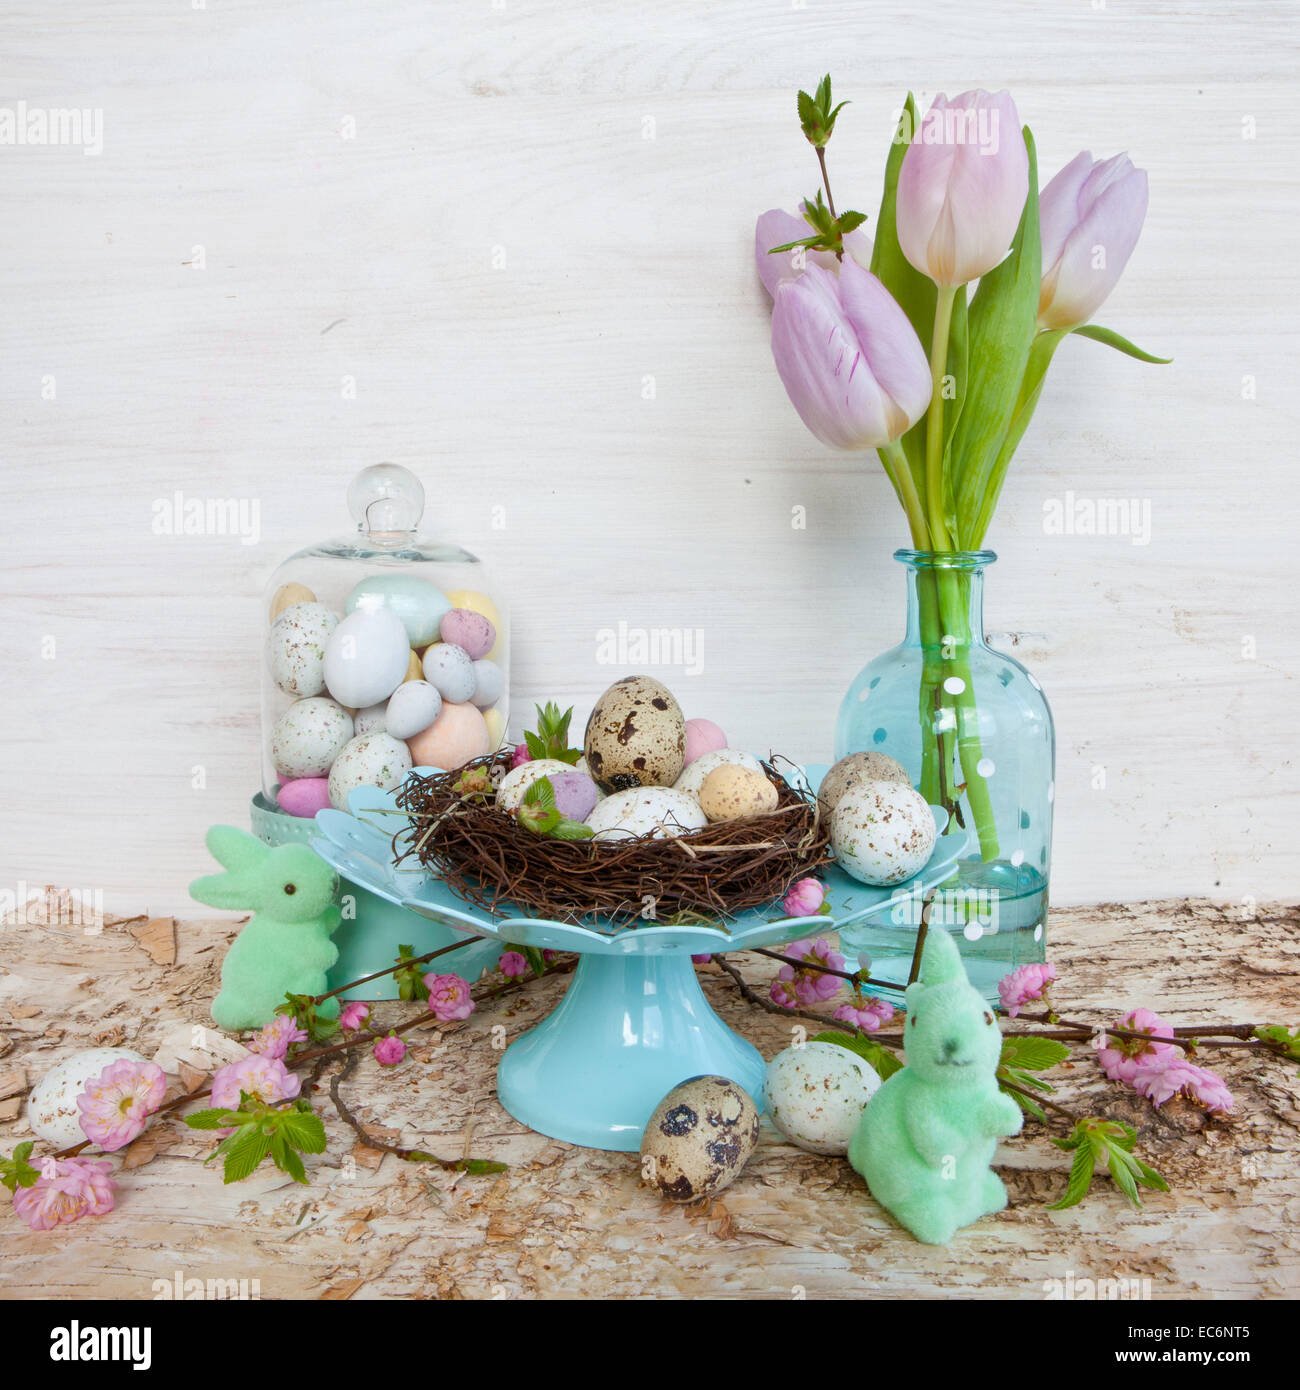 Easter decorations - Stock Image